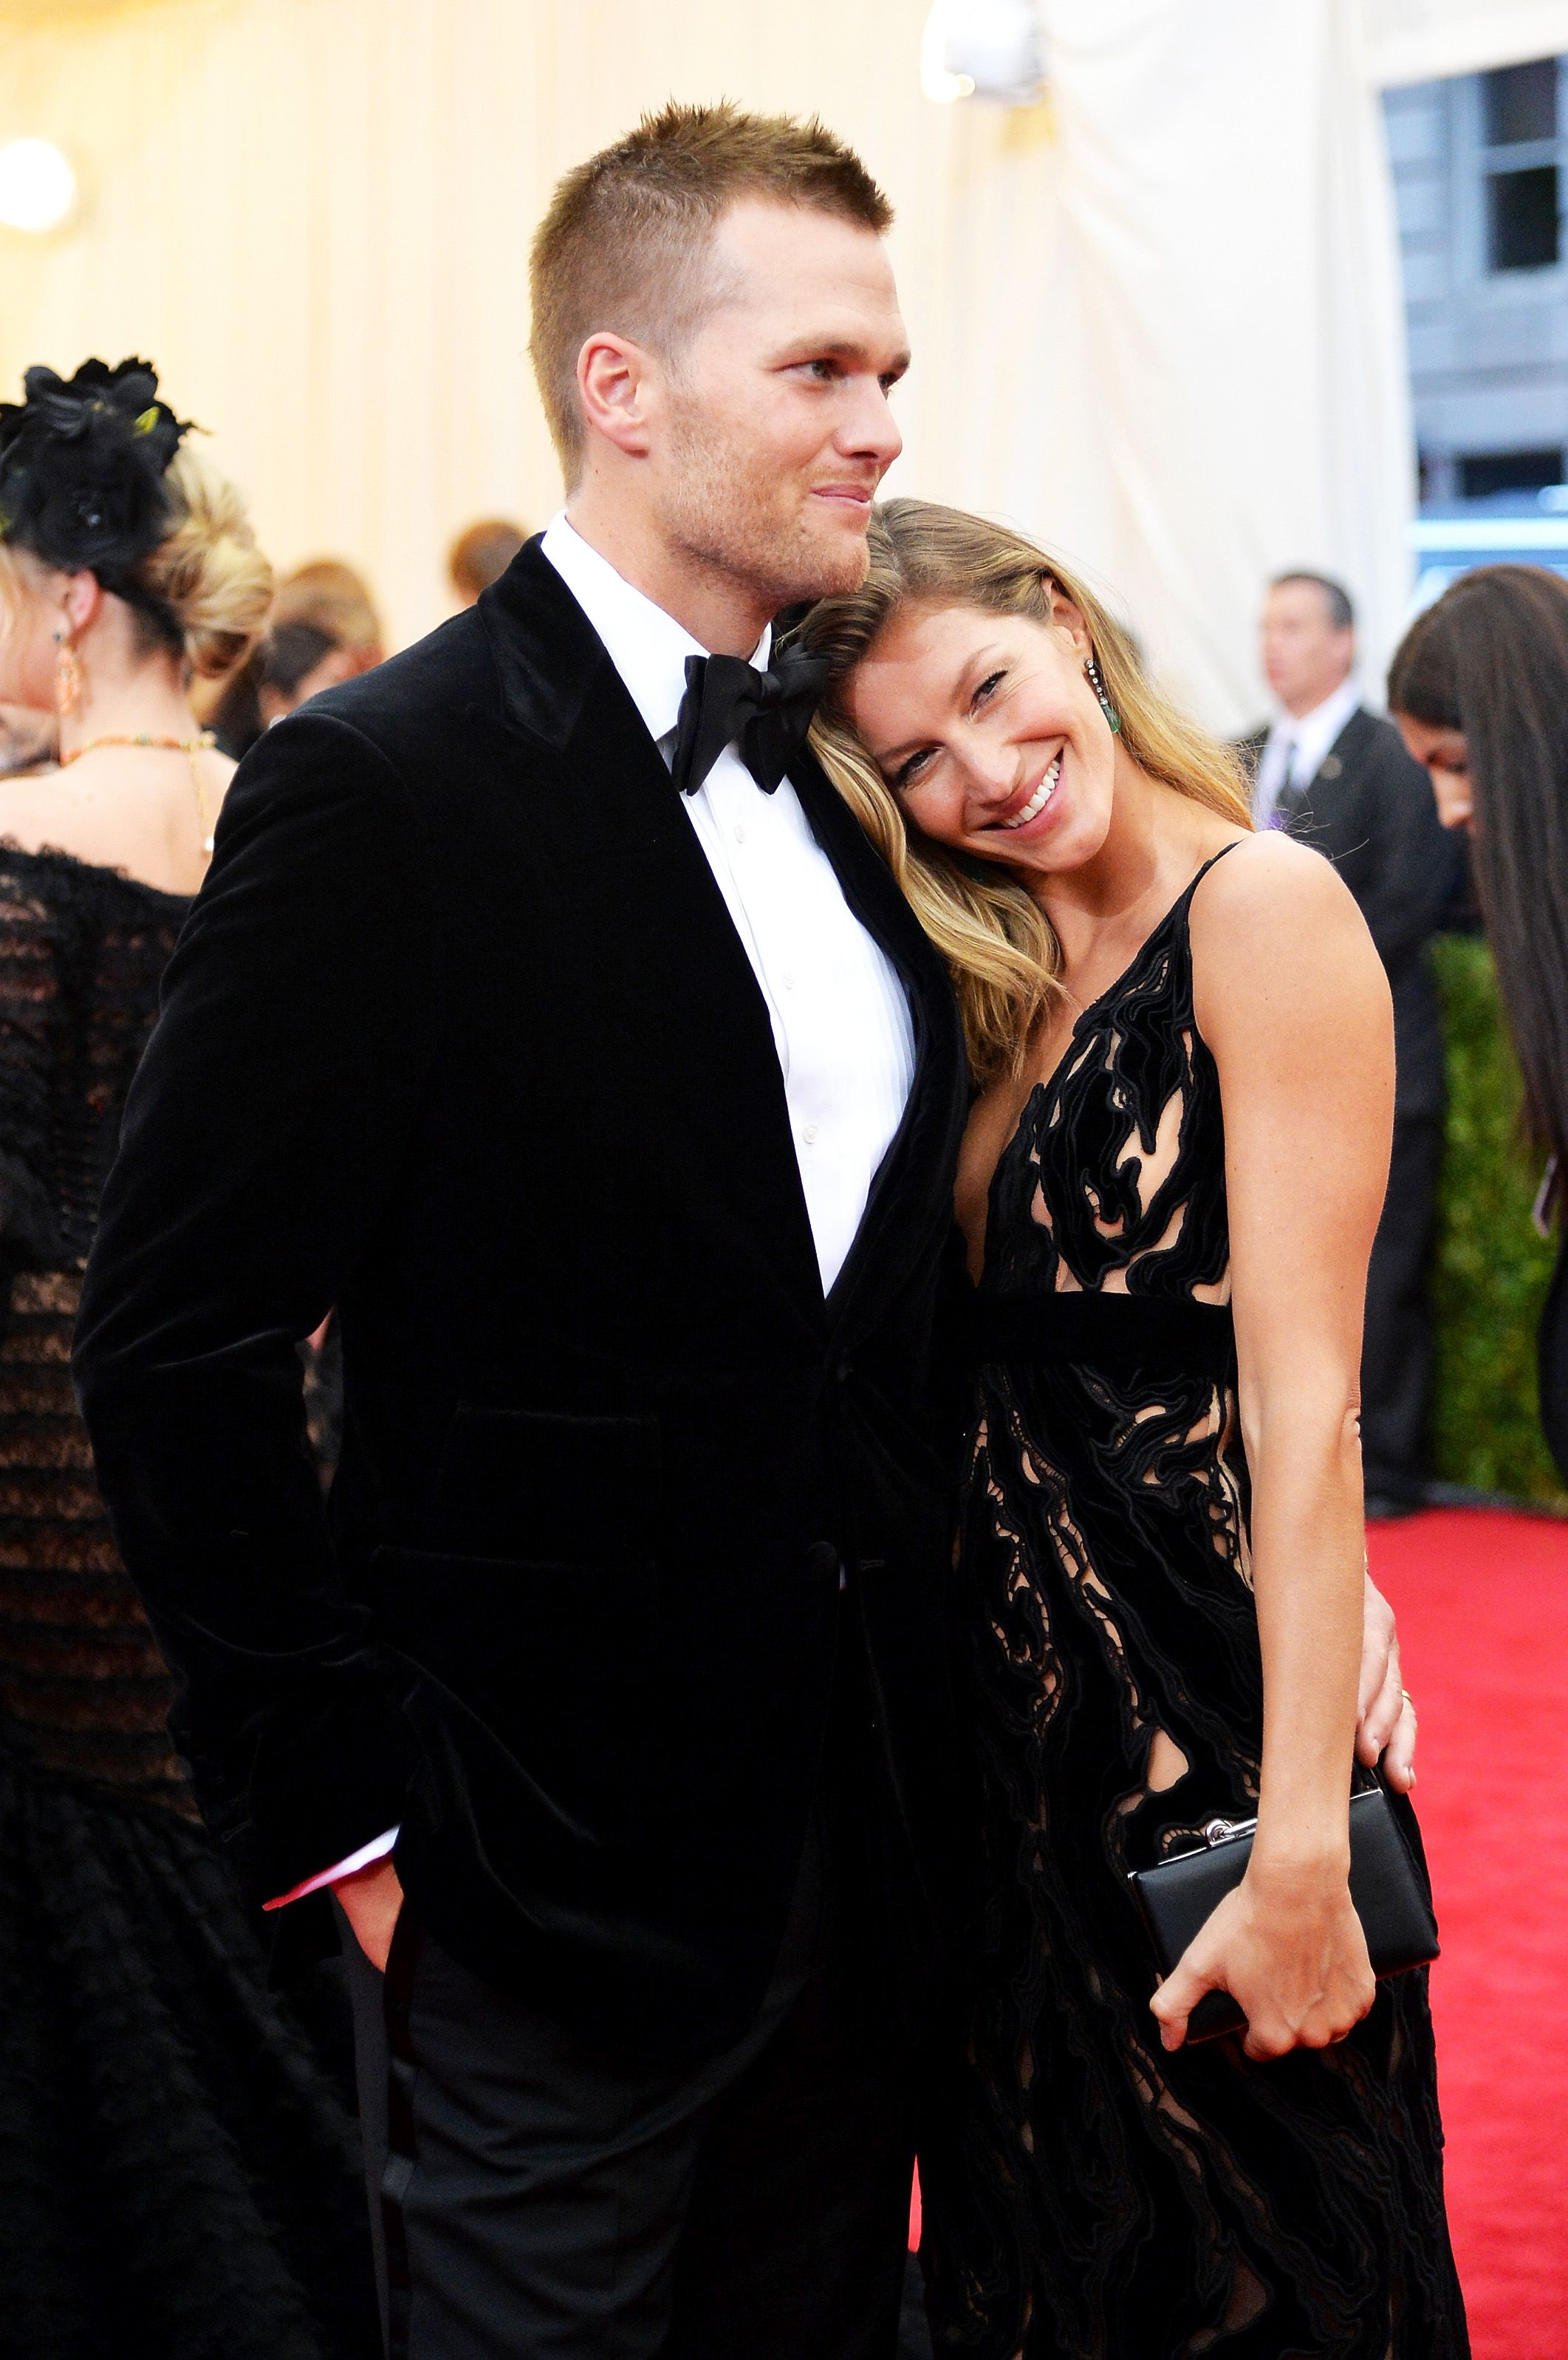 Gisele Bundchen Shares Rare Intimate Details About Her Wedding To Tom Brady